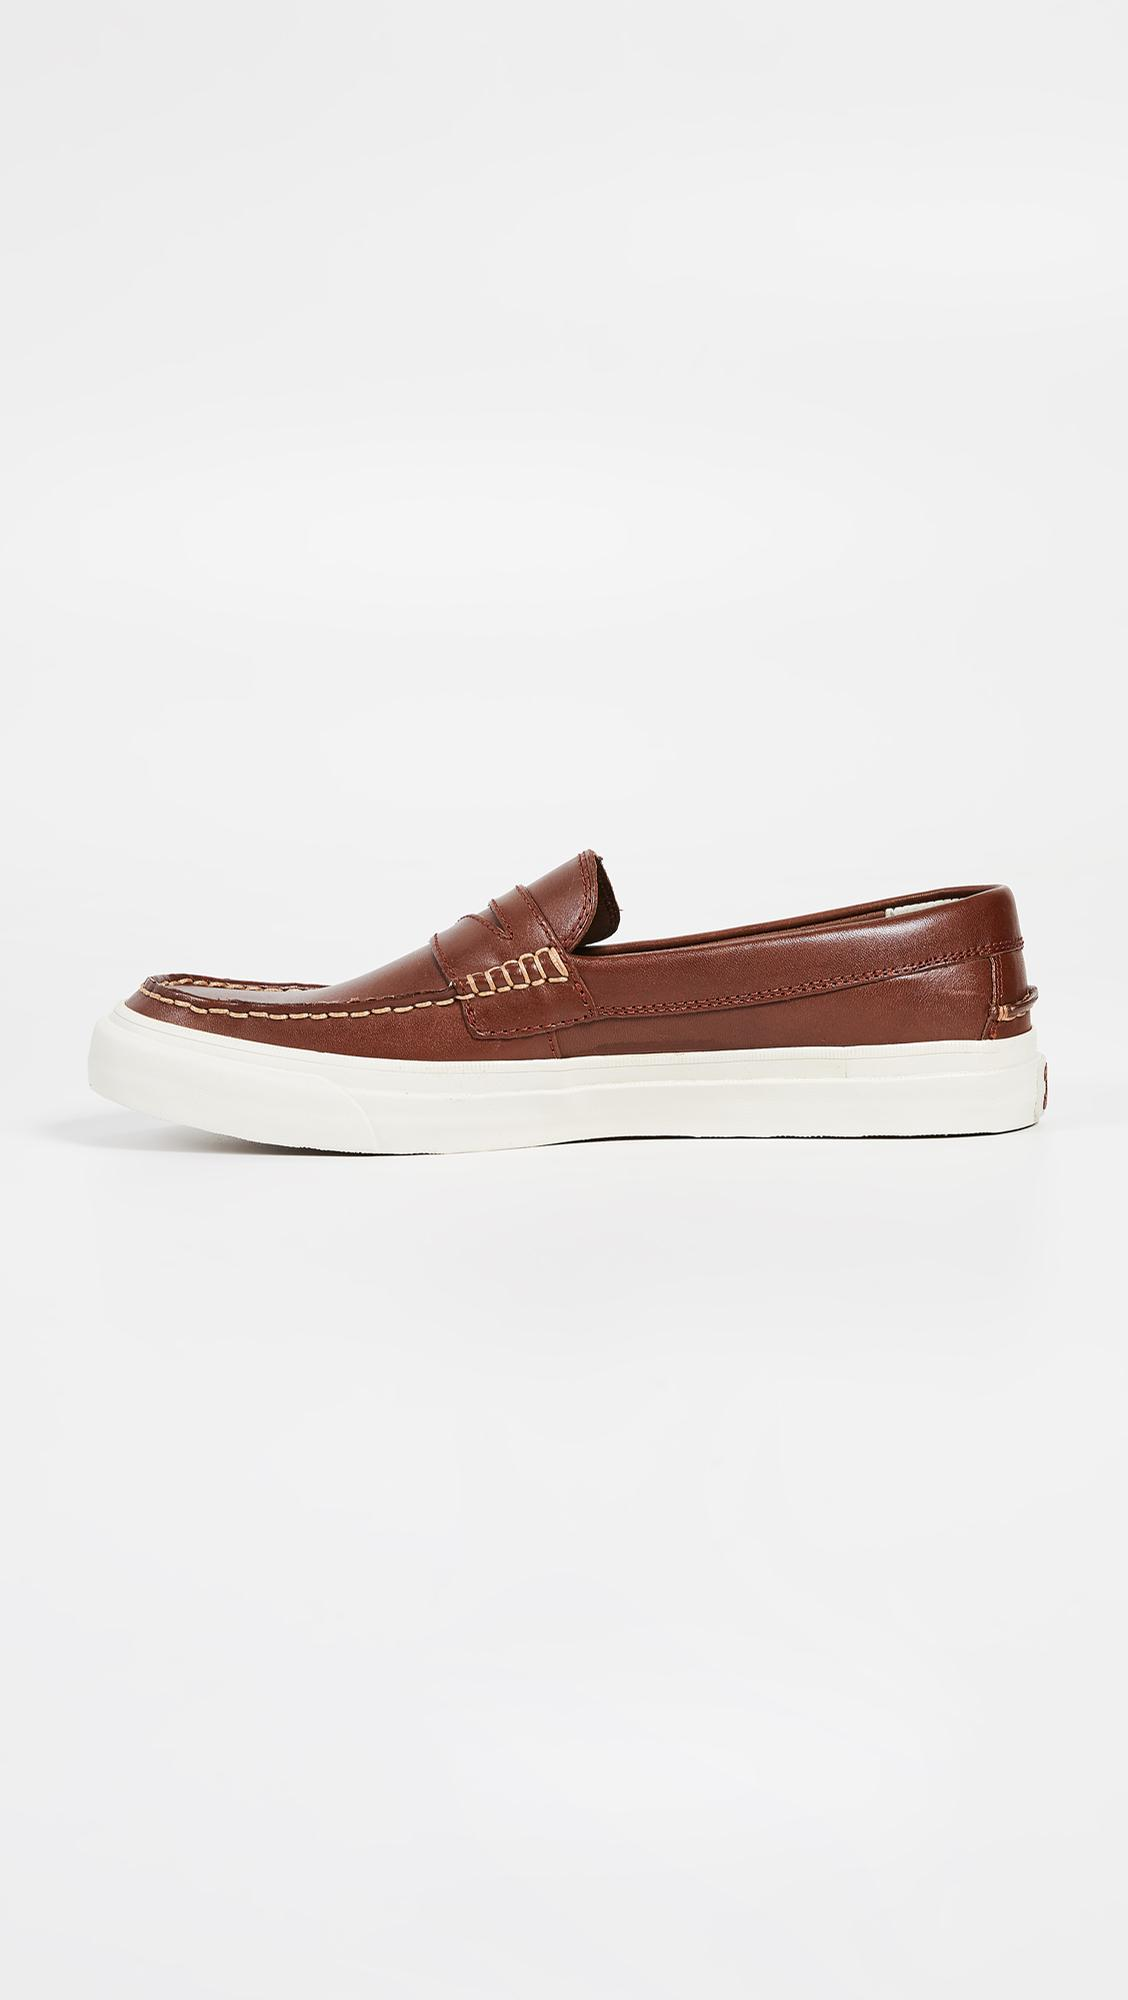 939fd60647b Cole Haan - Multicolor Pinch Weekender Lx Penny Loafers for Men - Lyst.  View fullscreen